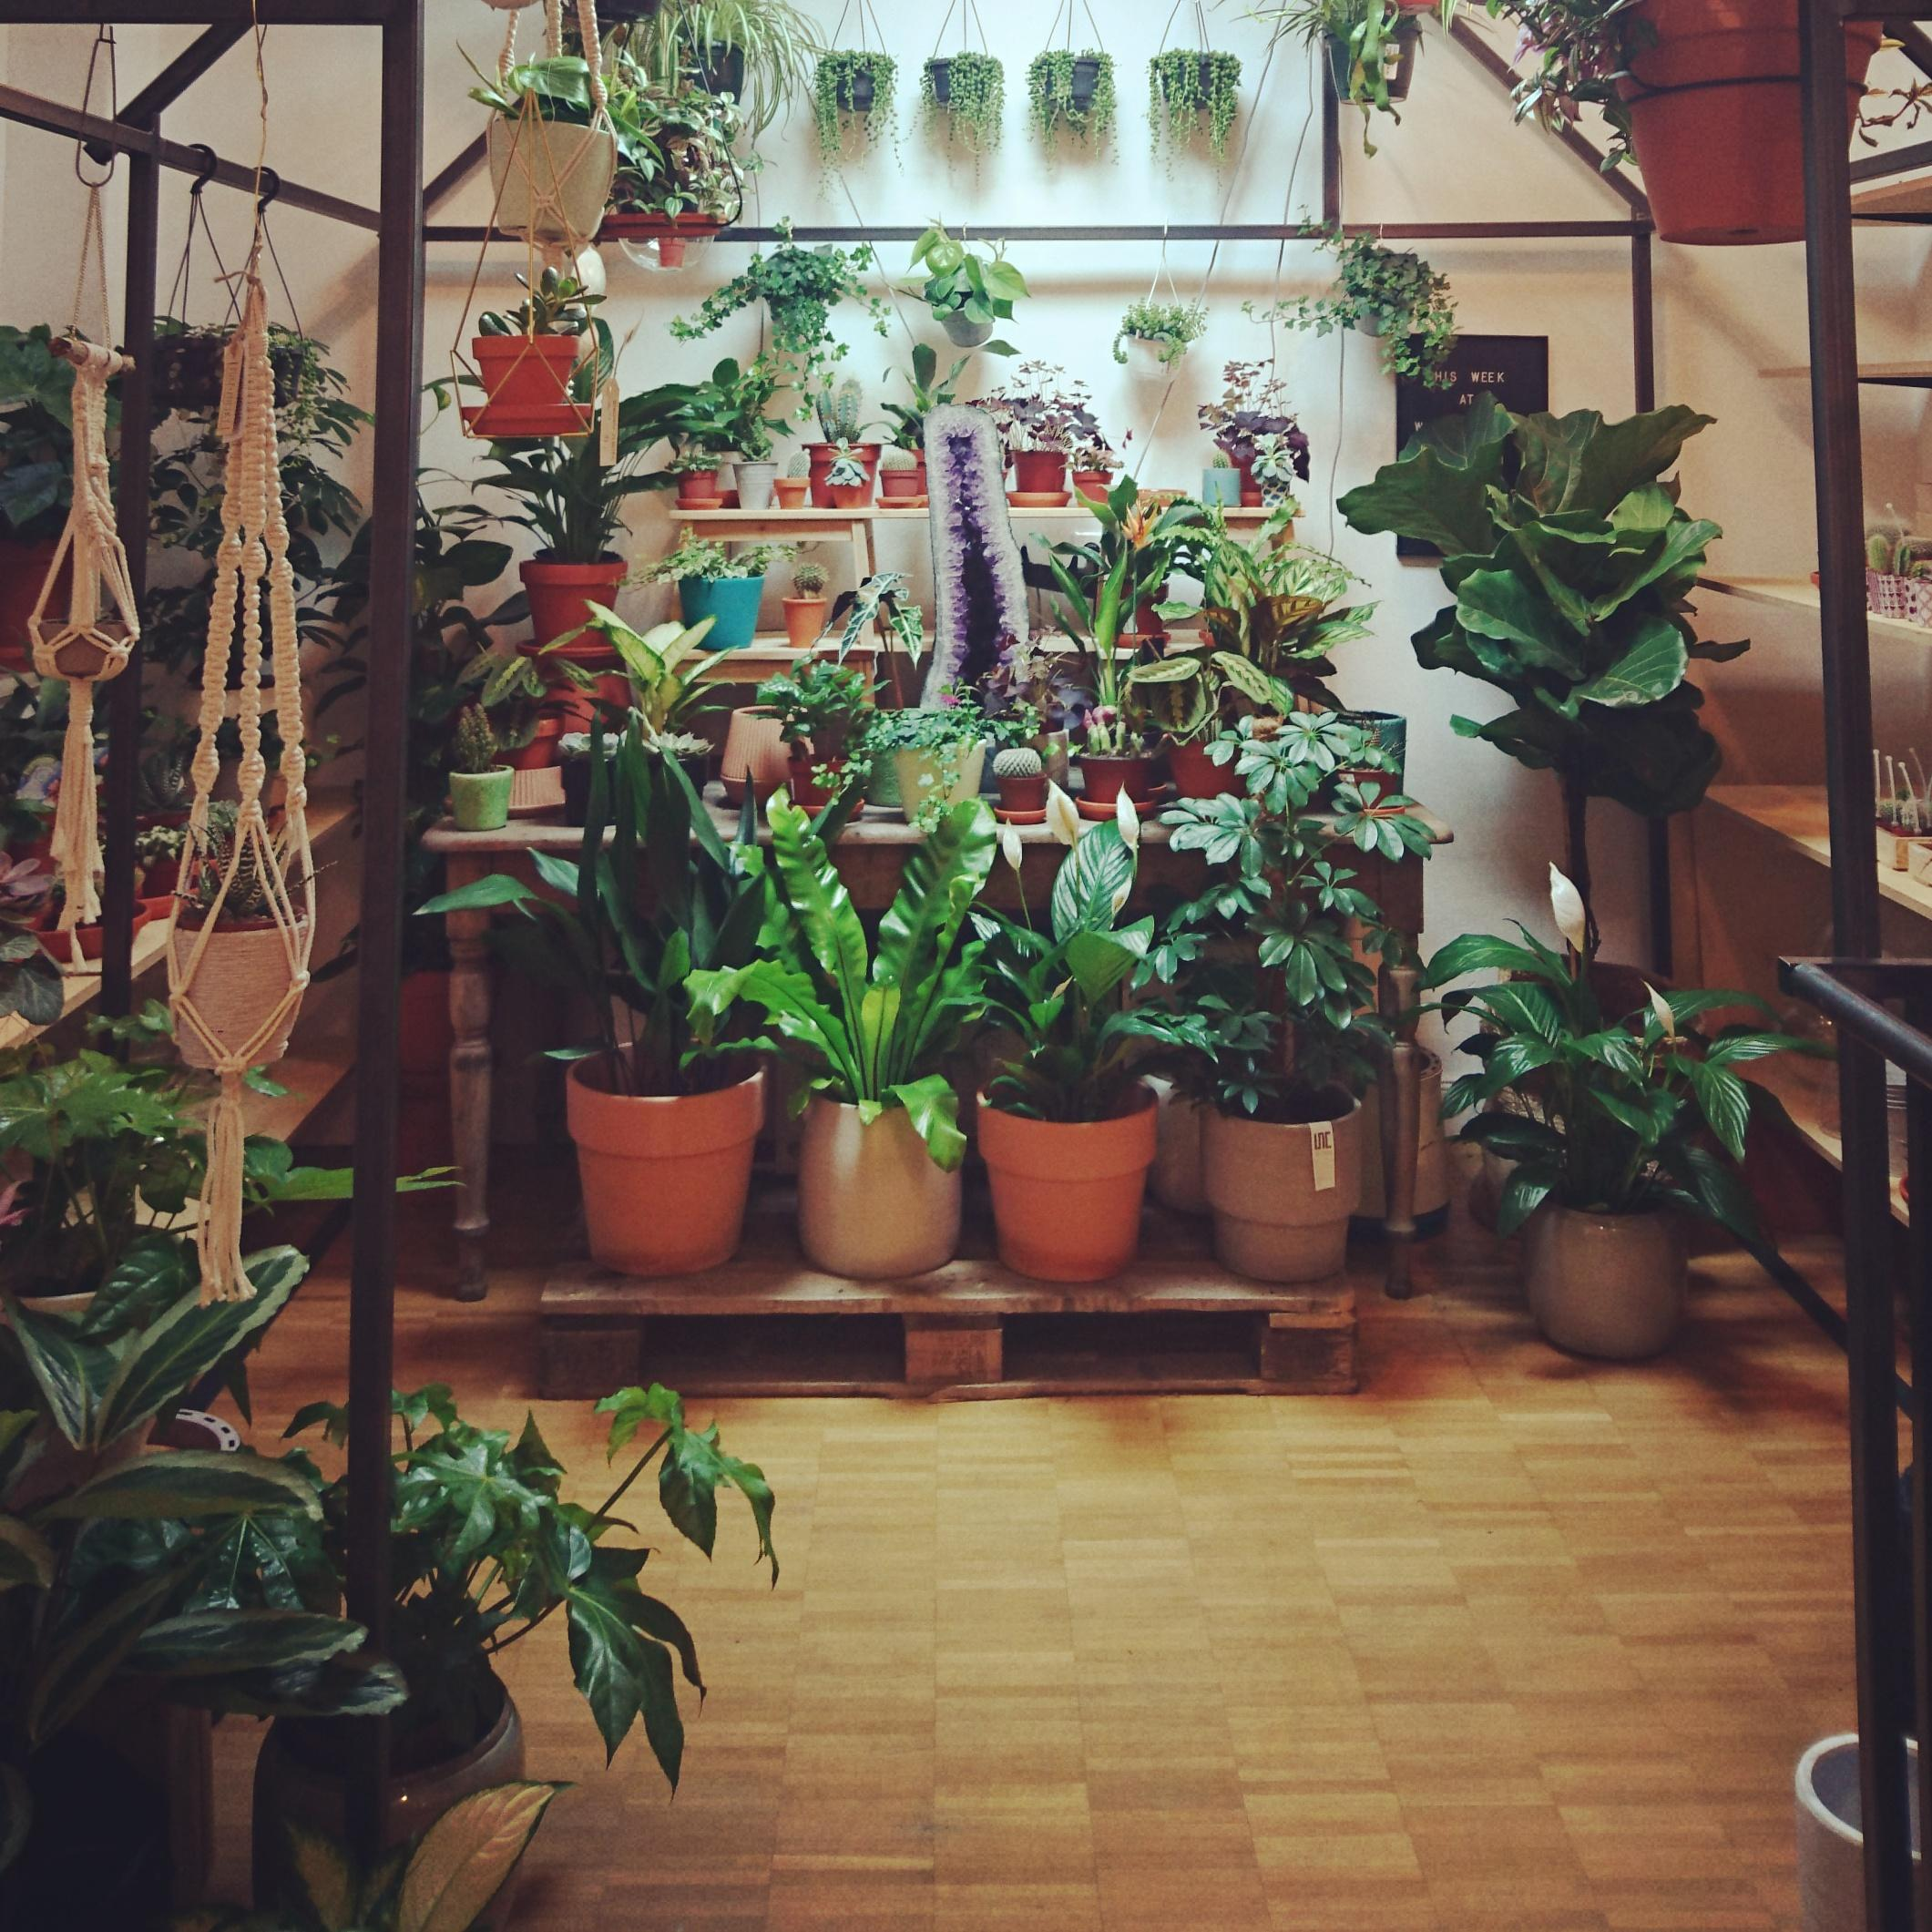 plant paradise 🌿 #winkelvansinkel #urbanjungle #greenery #shopping